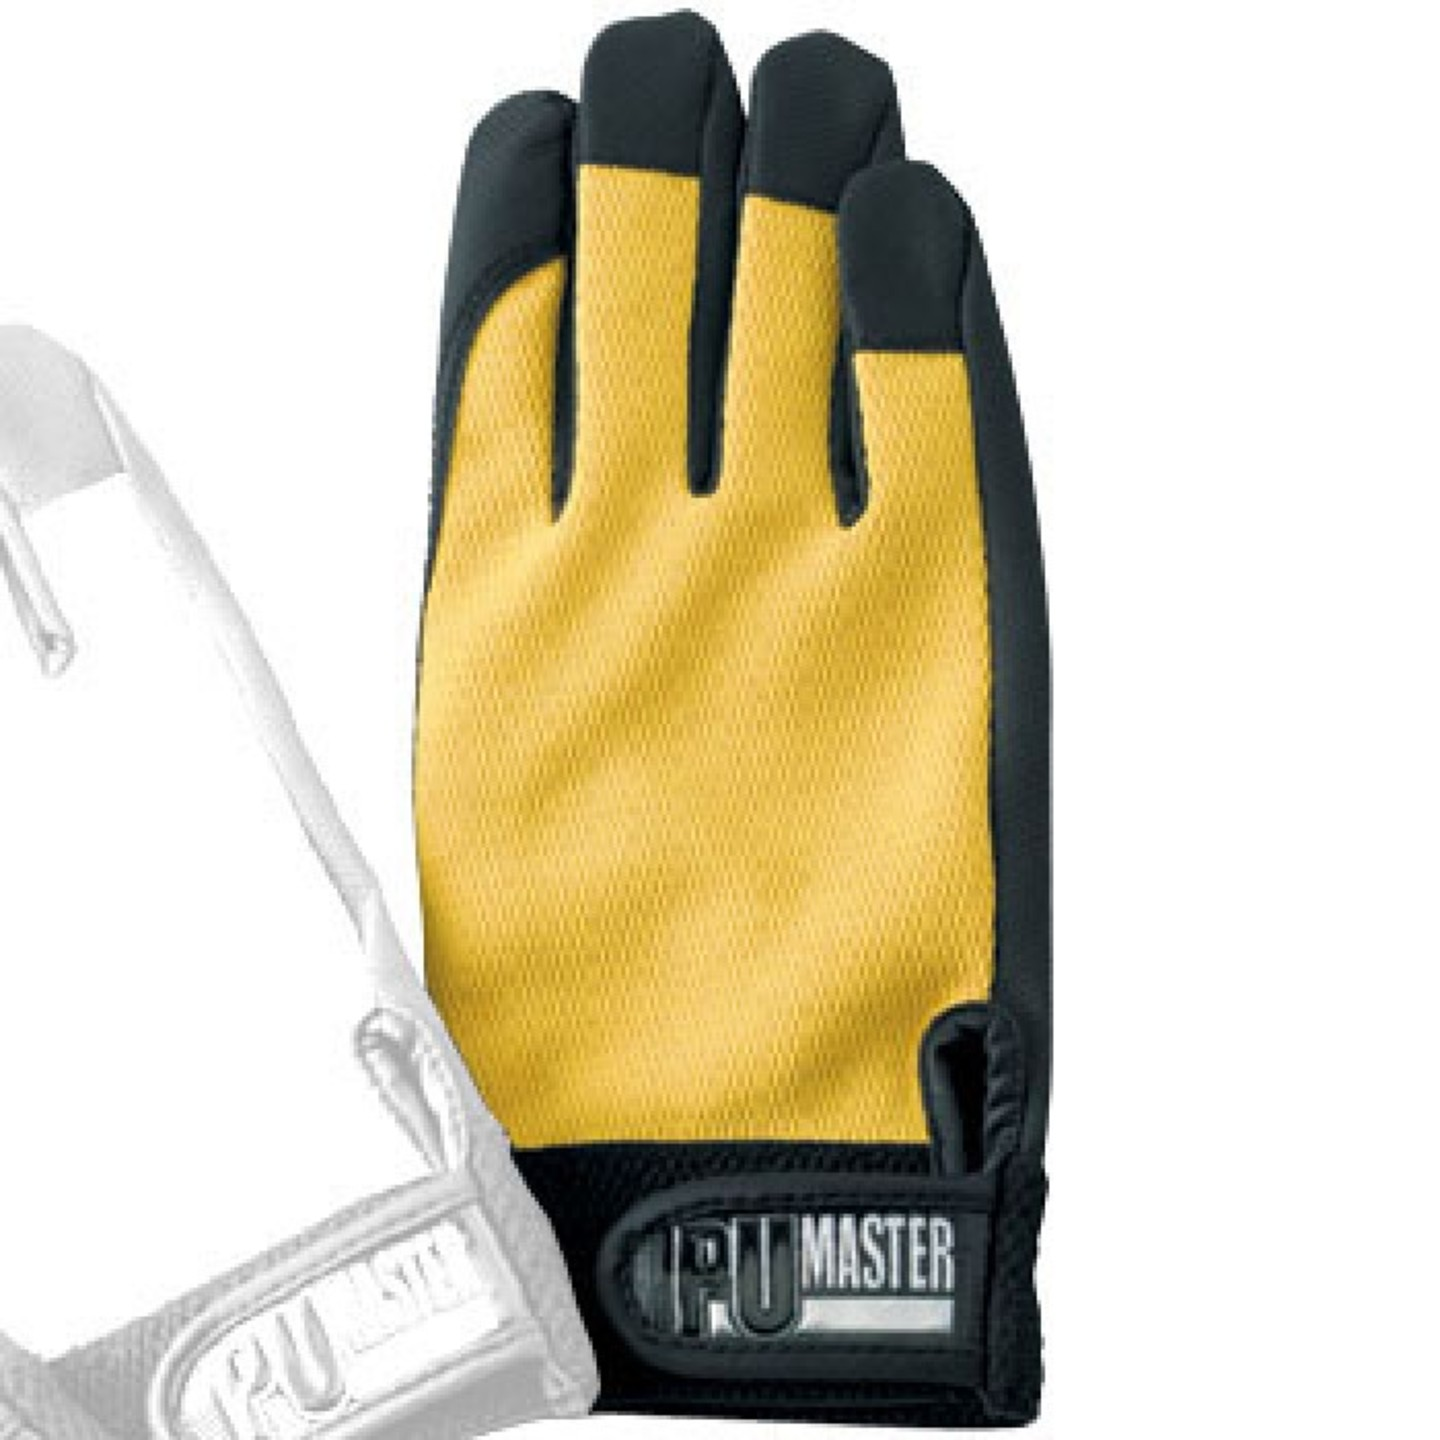 PU Master Ultimate Frisbee Gloves